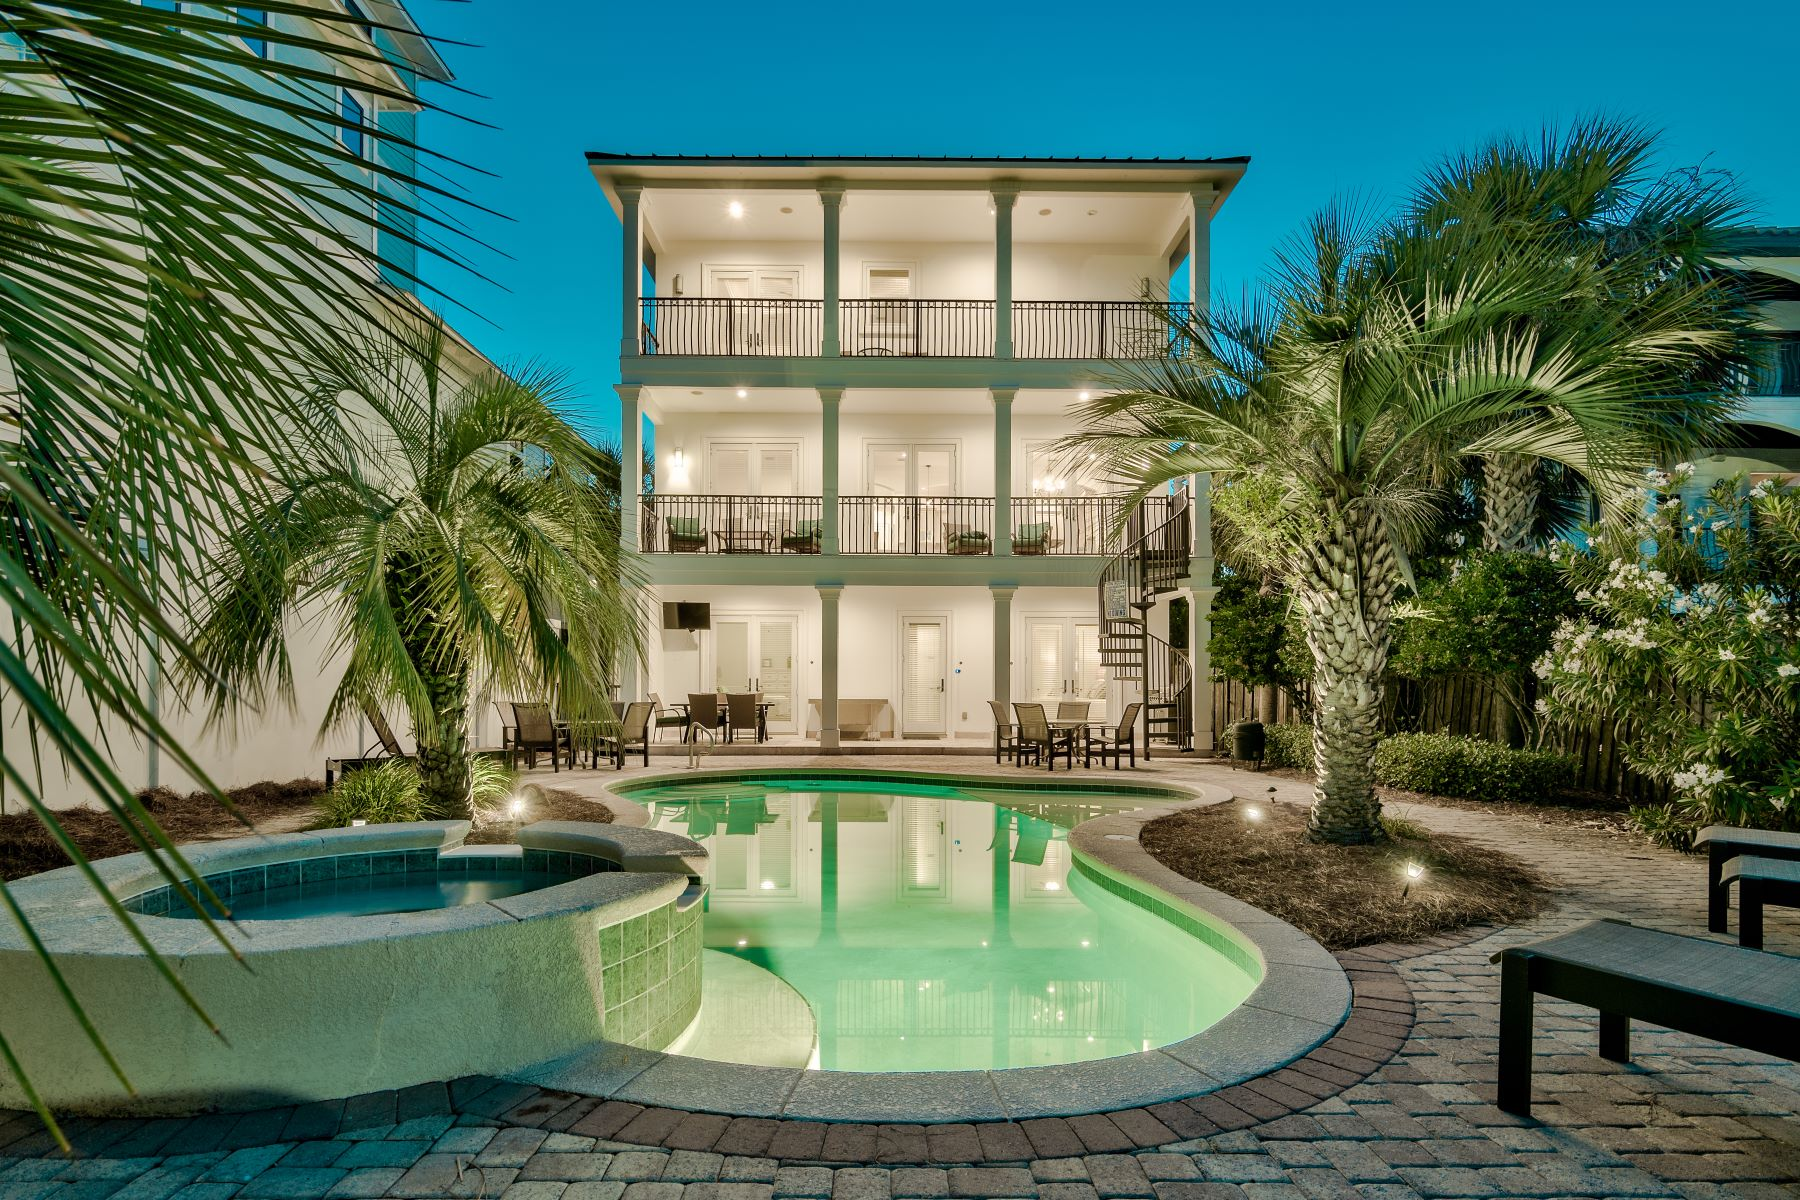 Single Family Homes für Verkauf beim Resort Style Home with Designer Interior and Gated Beach Access 52 Miami Street, Miramar Beach, Florida 32550 Vereinigte Staaten